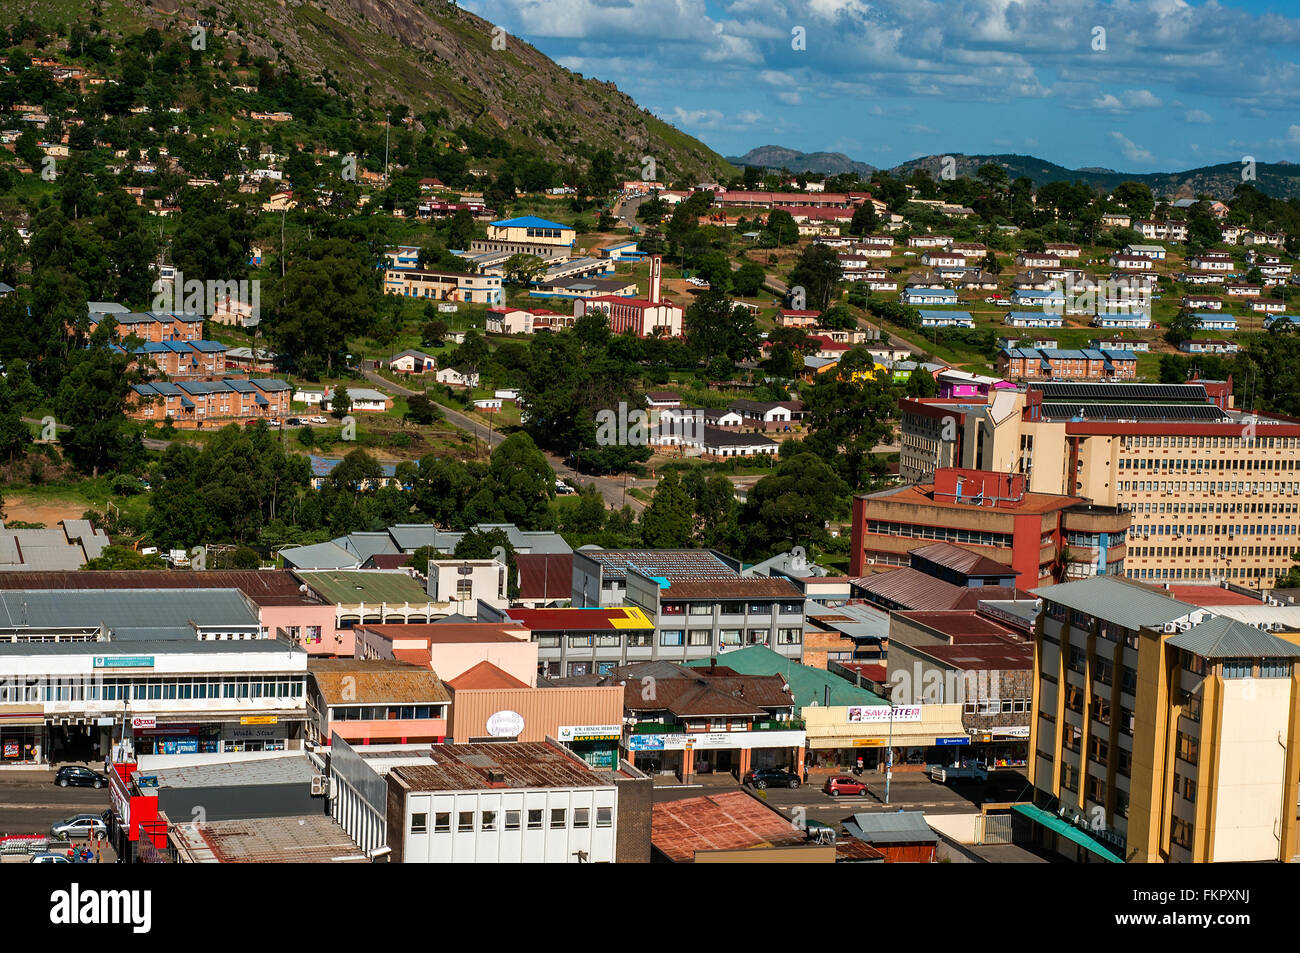 Aerial view of CBD looking east, CBD, Mbabane, Swaziland - Stock Image